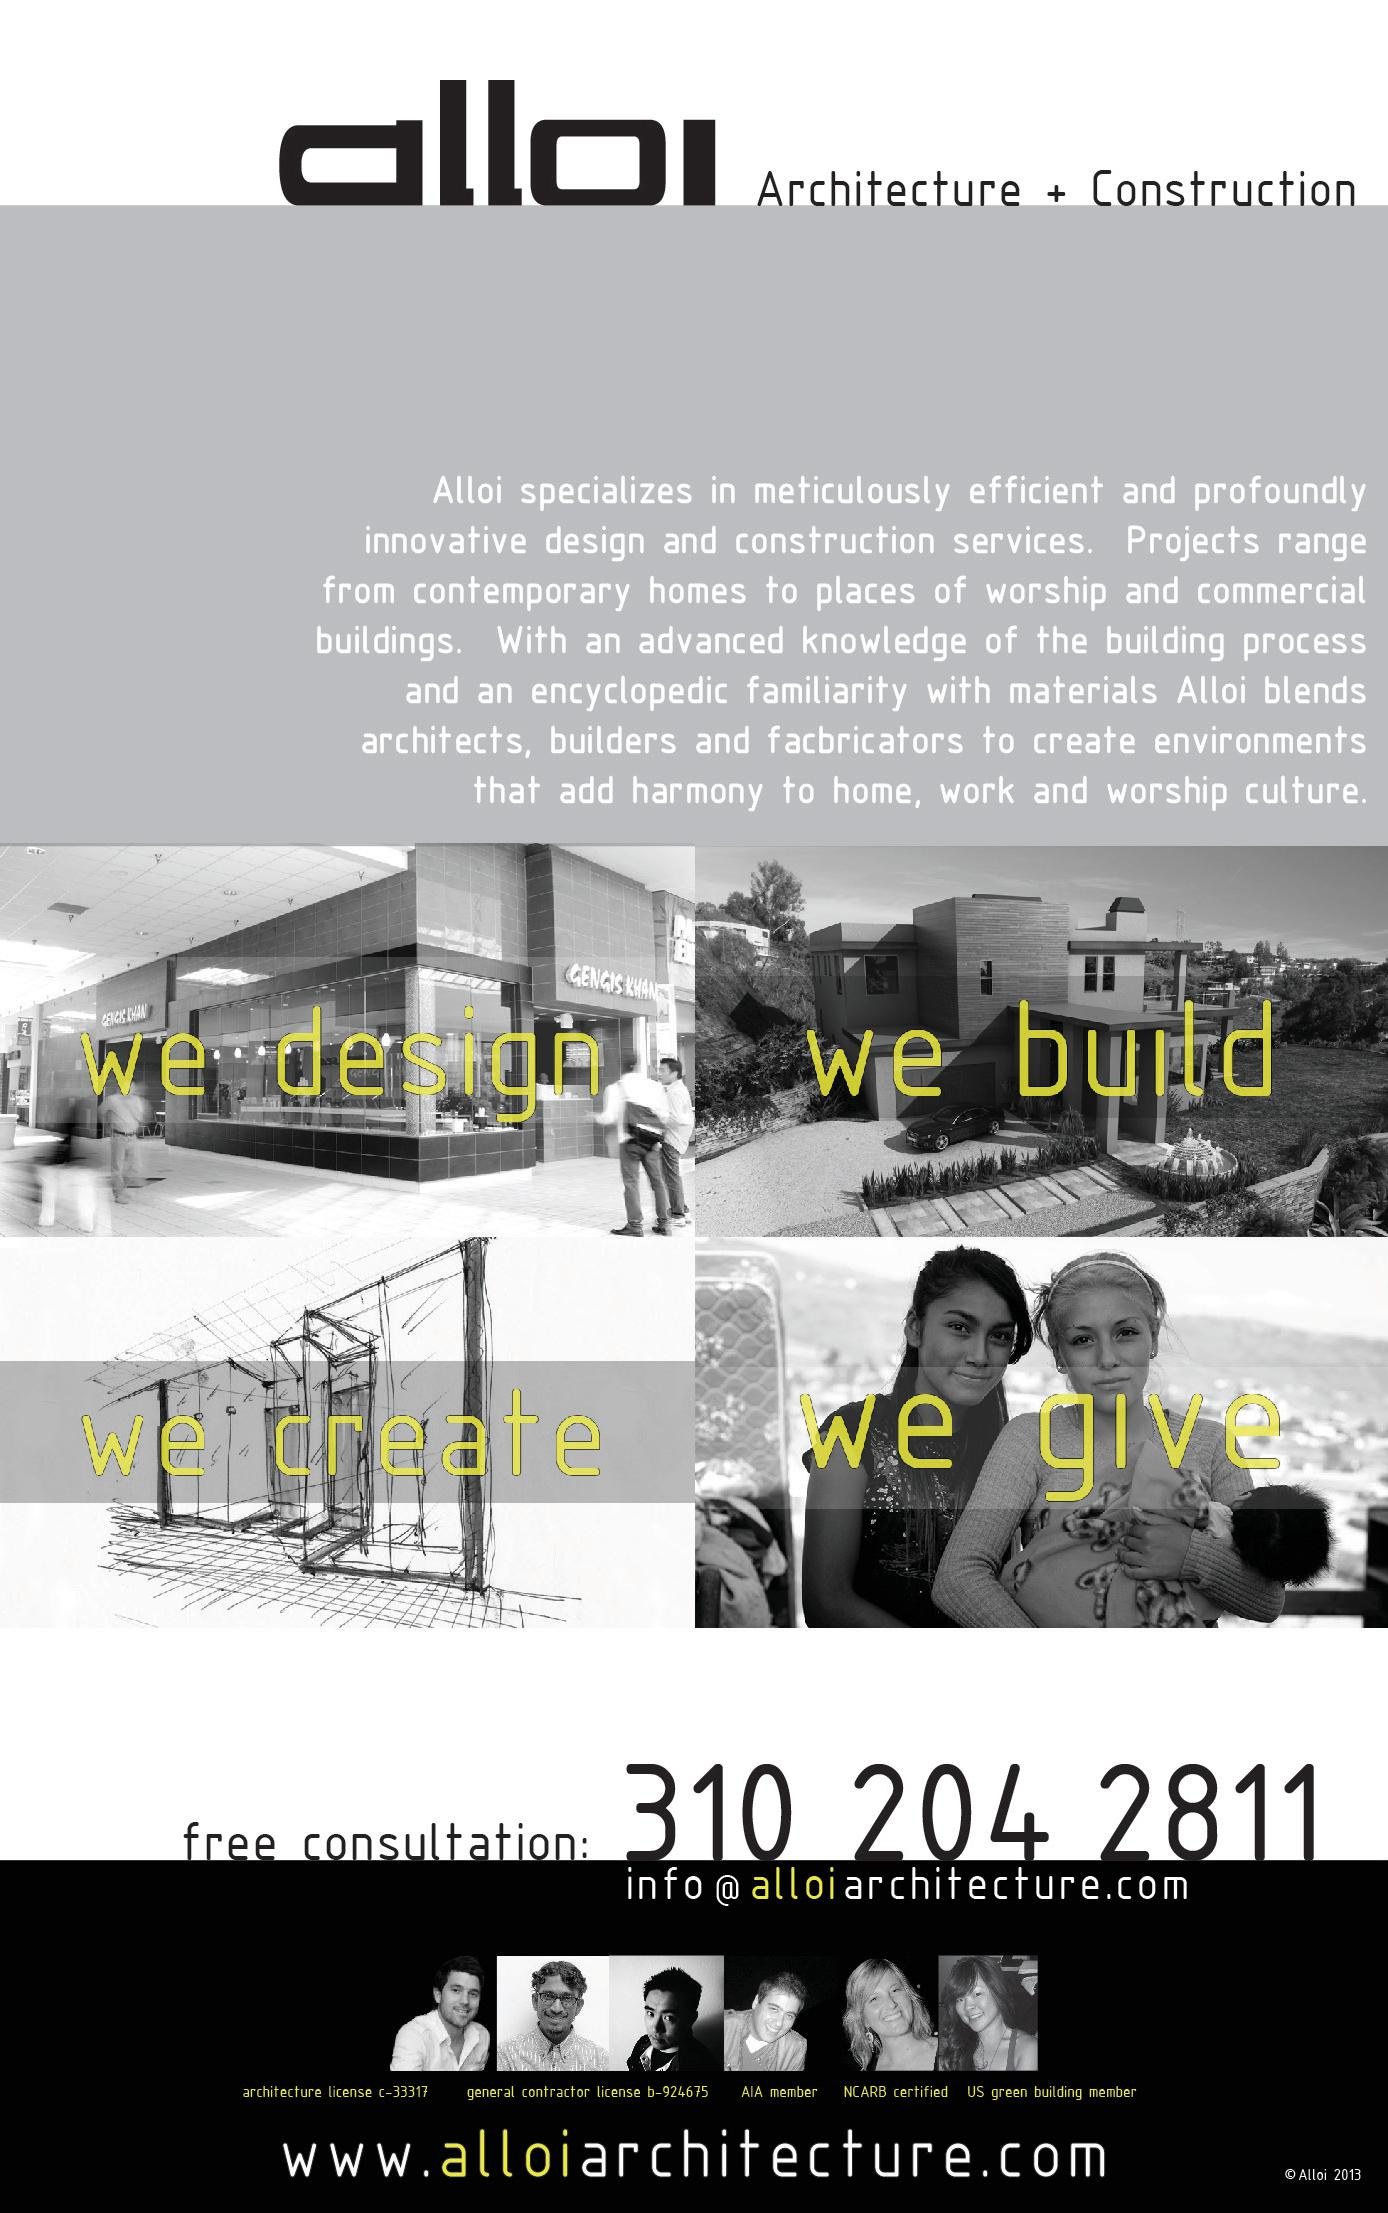 Alloi Architecture + Construction